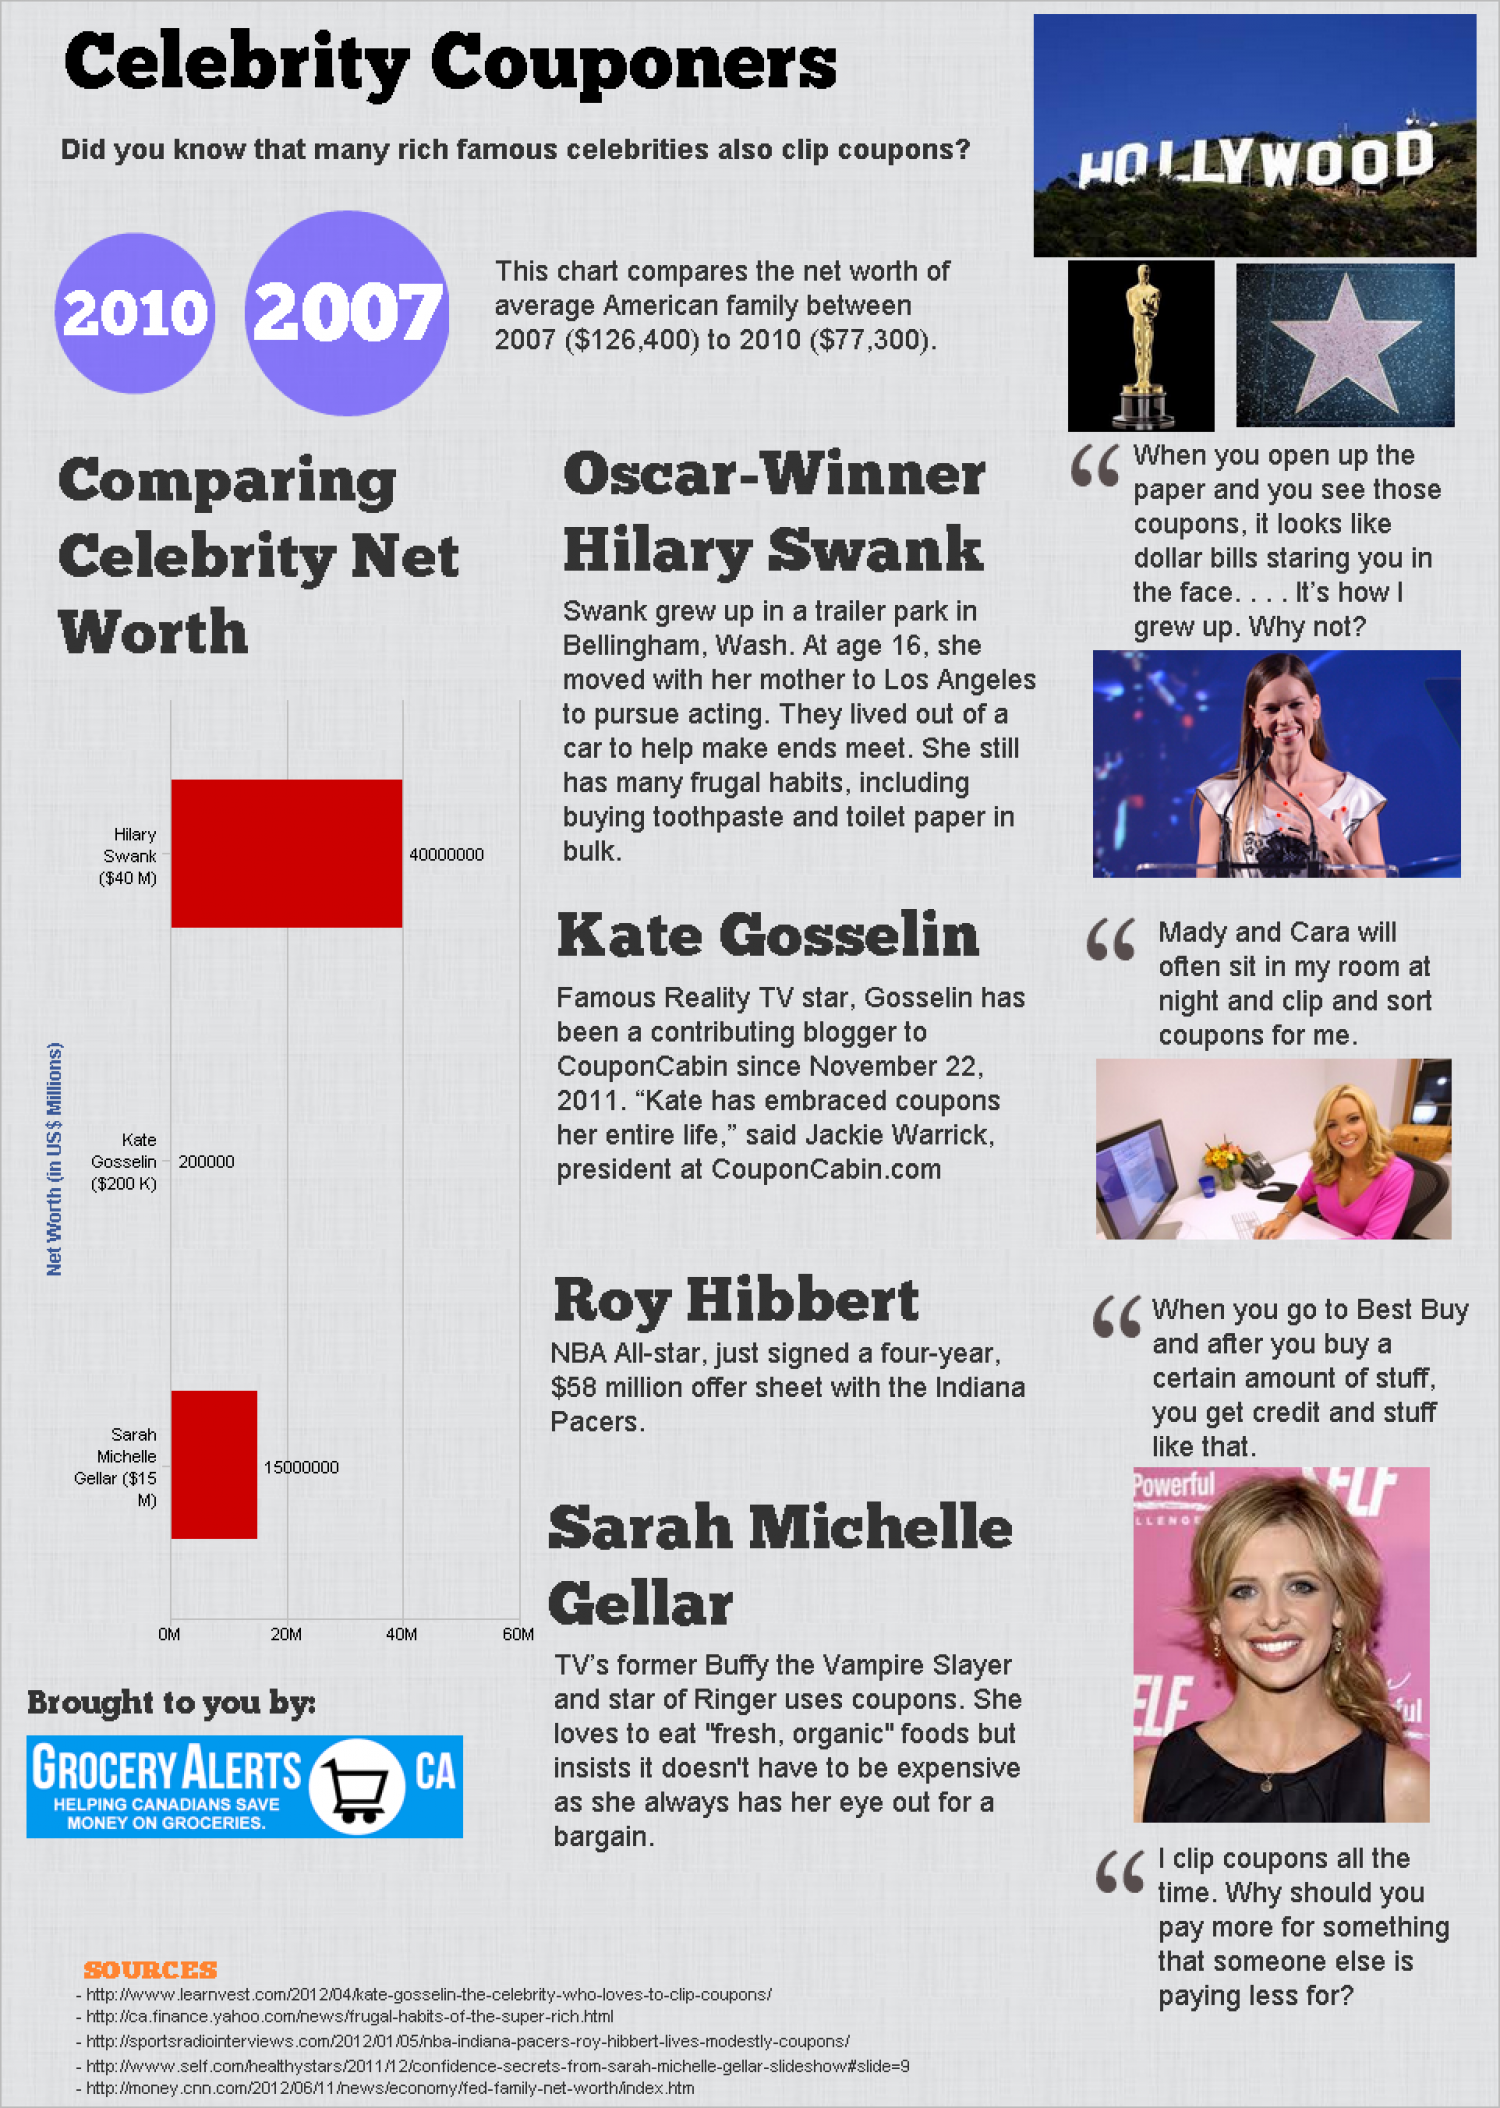 Celebrity Couponers Infographic